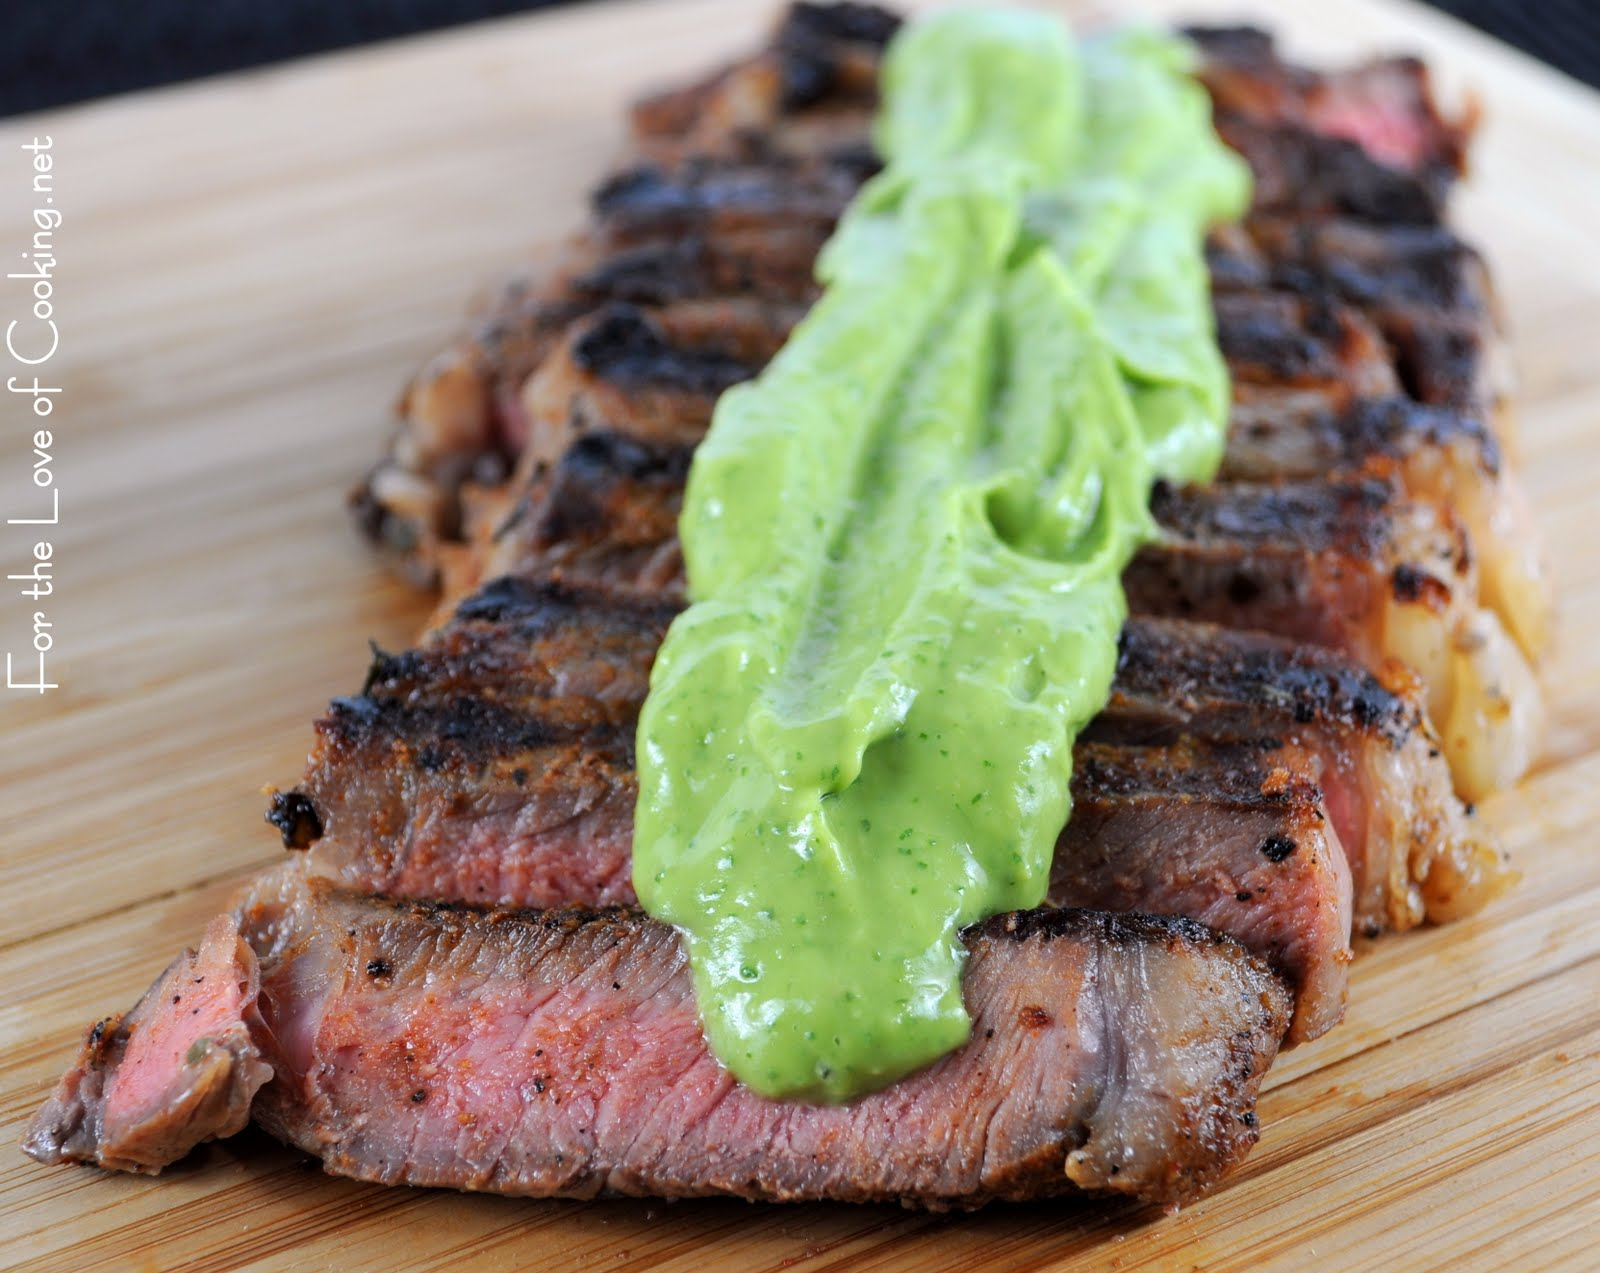 ... ซอสอโวคาโด Grilled Steak with Avocado Sauc